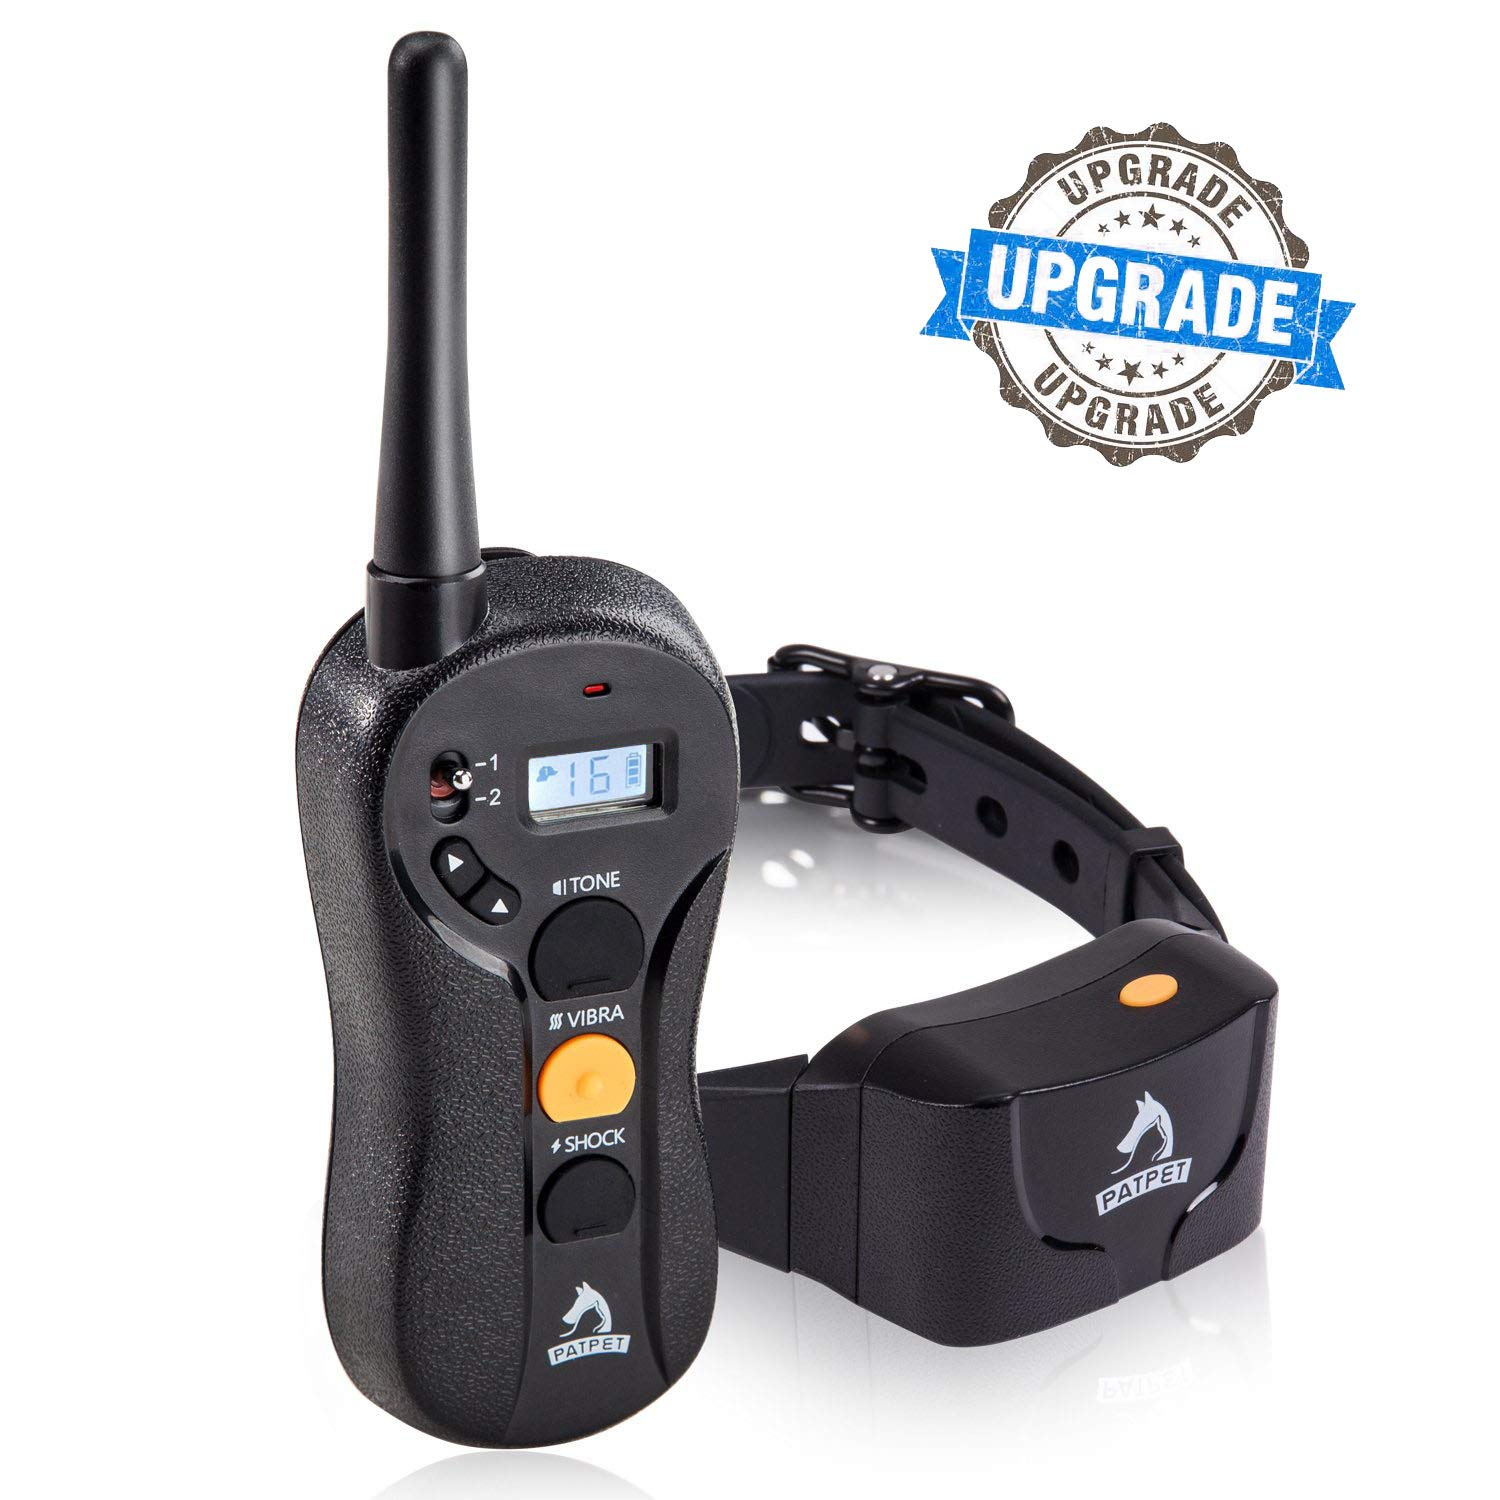 Patpet Dog Training Collar - Upgraded 1000Yd Remote Range,Blind Operation Remote Controlled, Rechargeable & Waterproof,Dog Shock Collar with Beep/Vibration/Shock Mode (Black)